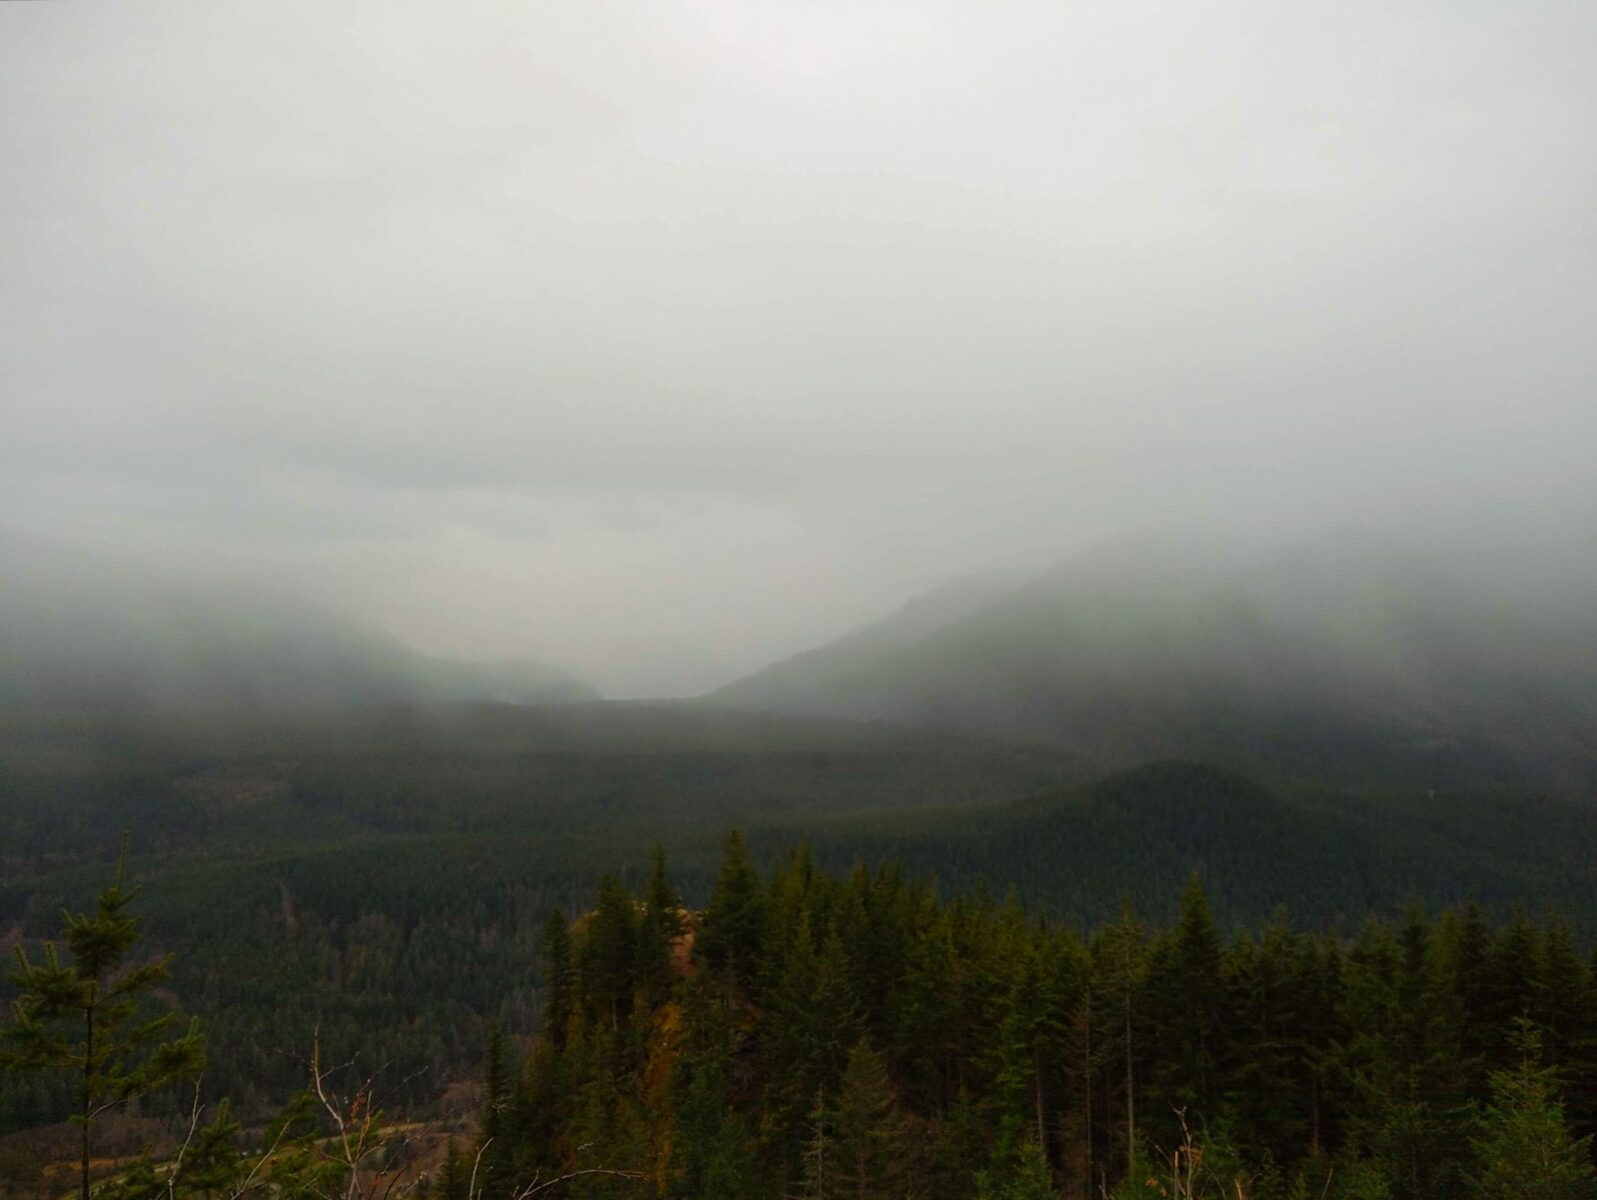 On the Rattlesnake Mountain hike near north bend, a view down to Rattlesnake Ledge, a popular hiking destination. In the foreground are evergreen trees, in the background there are low clouds covering the mountains and clinging to the middle fork snoqualmie river valley.